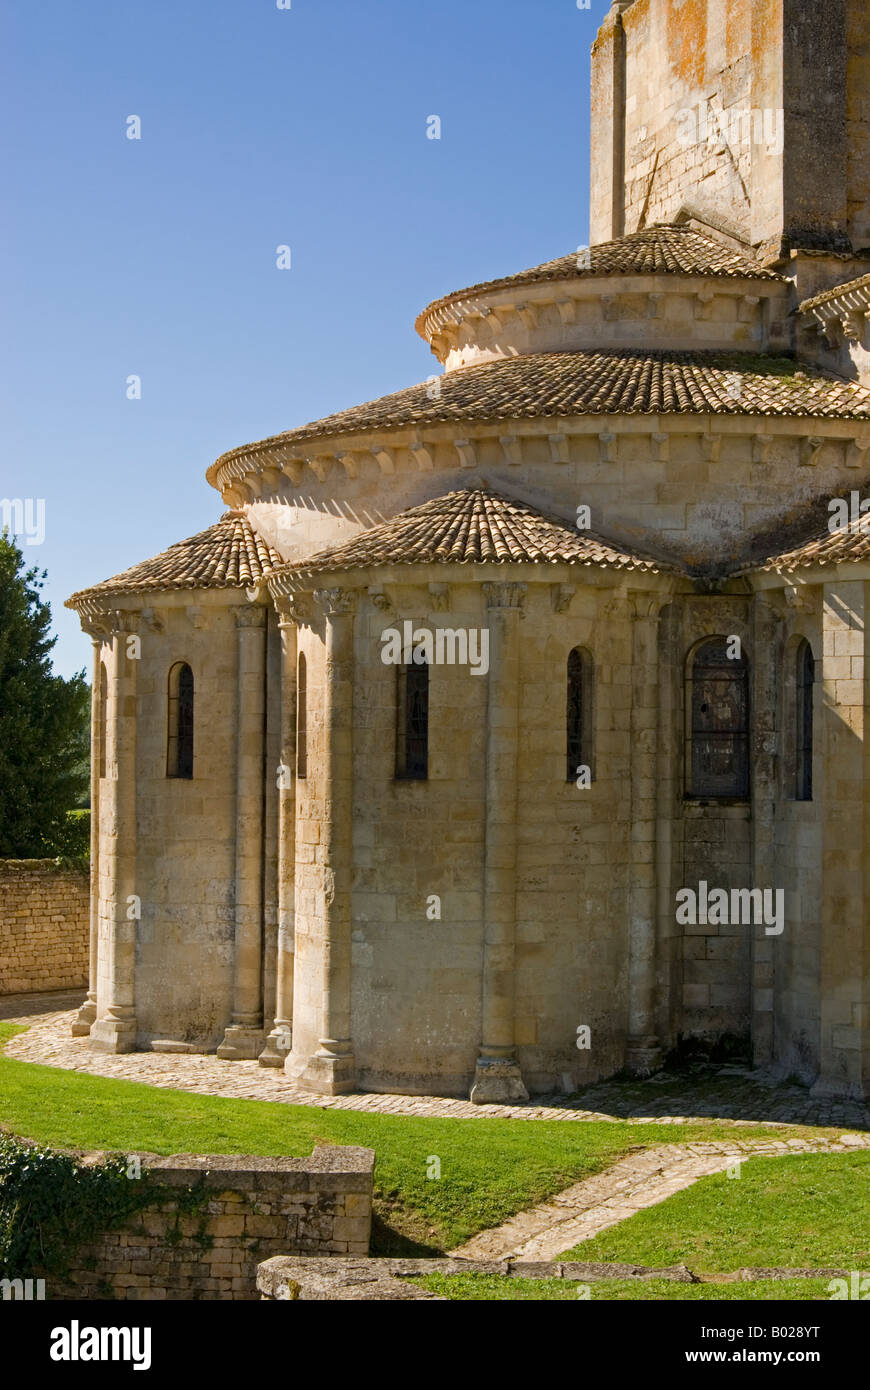 Melle Stock Photos & Melle Stock Images - Alamy